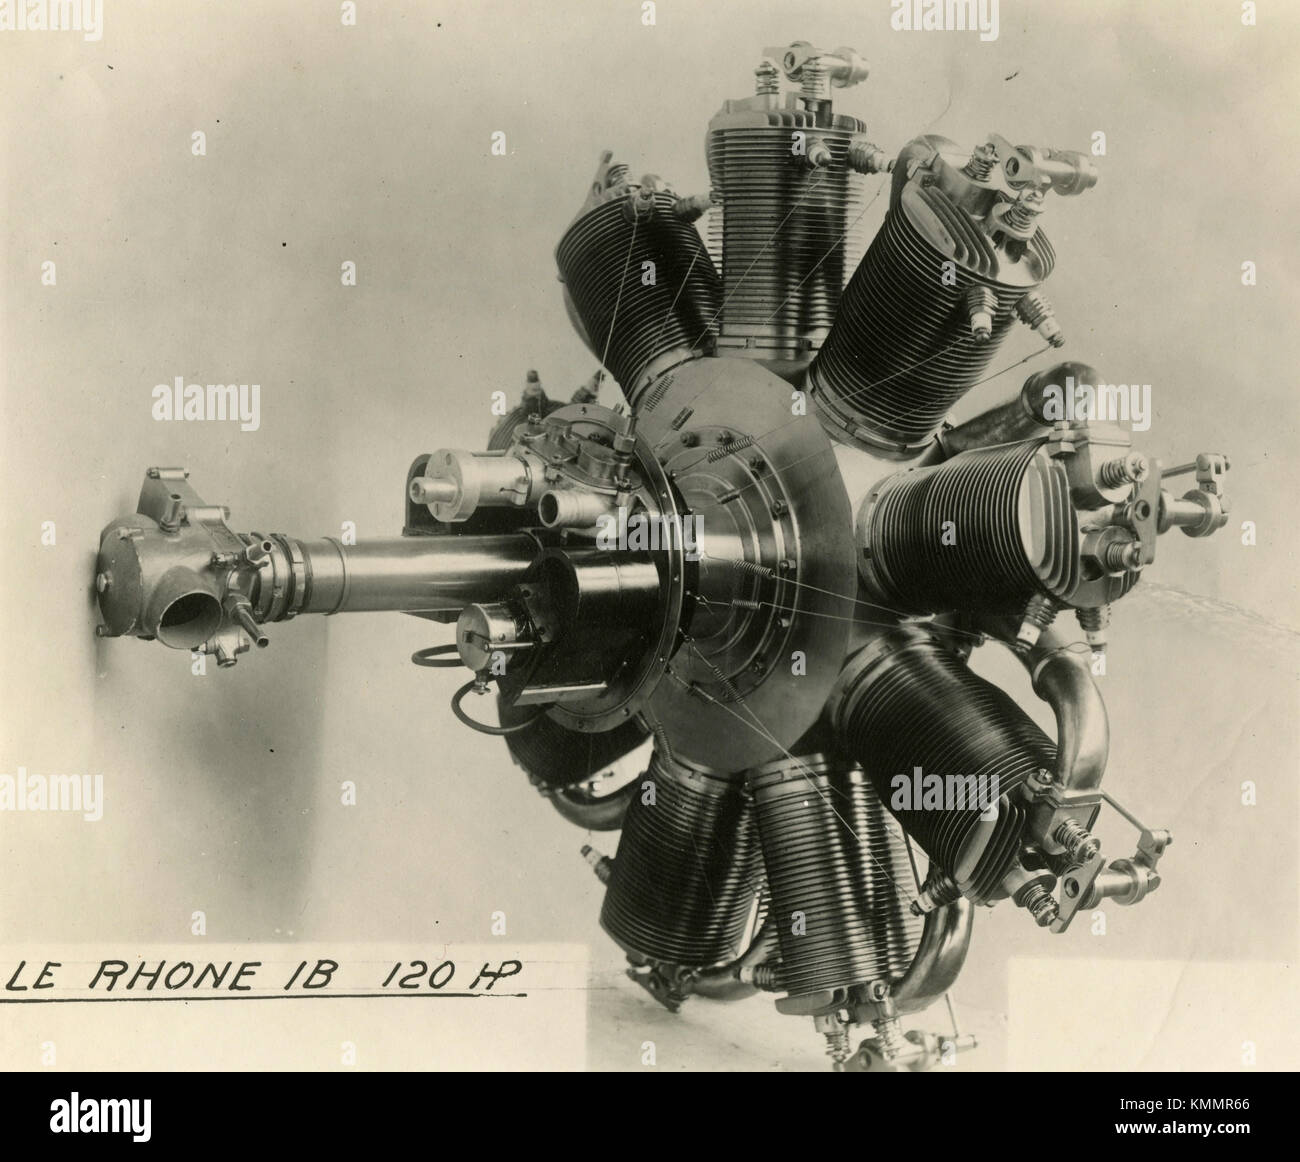 Radiant aircraft engine Le Rhone IB HP 120, France 1920s - Stock Image